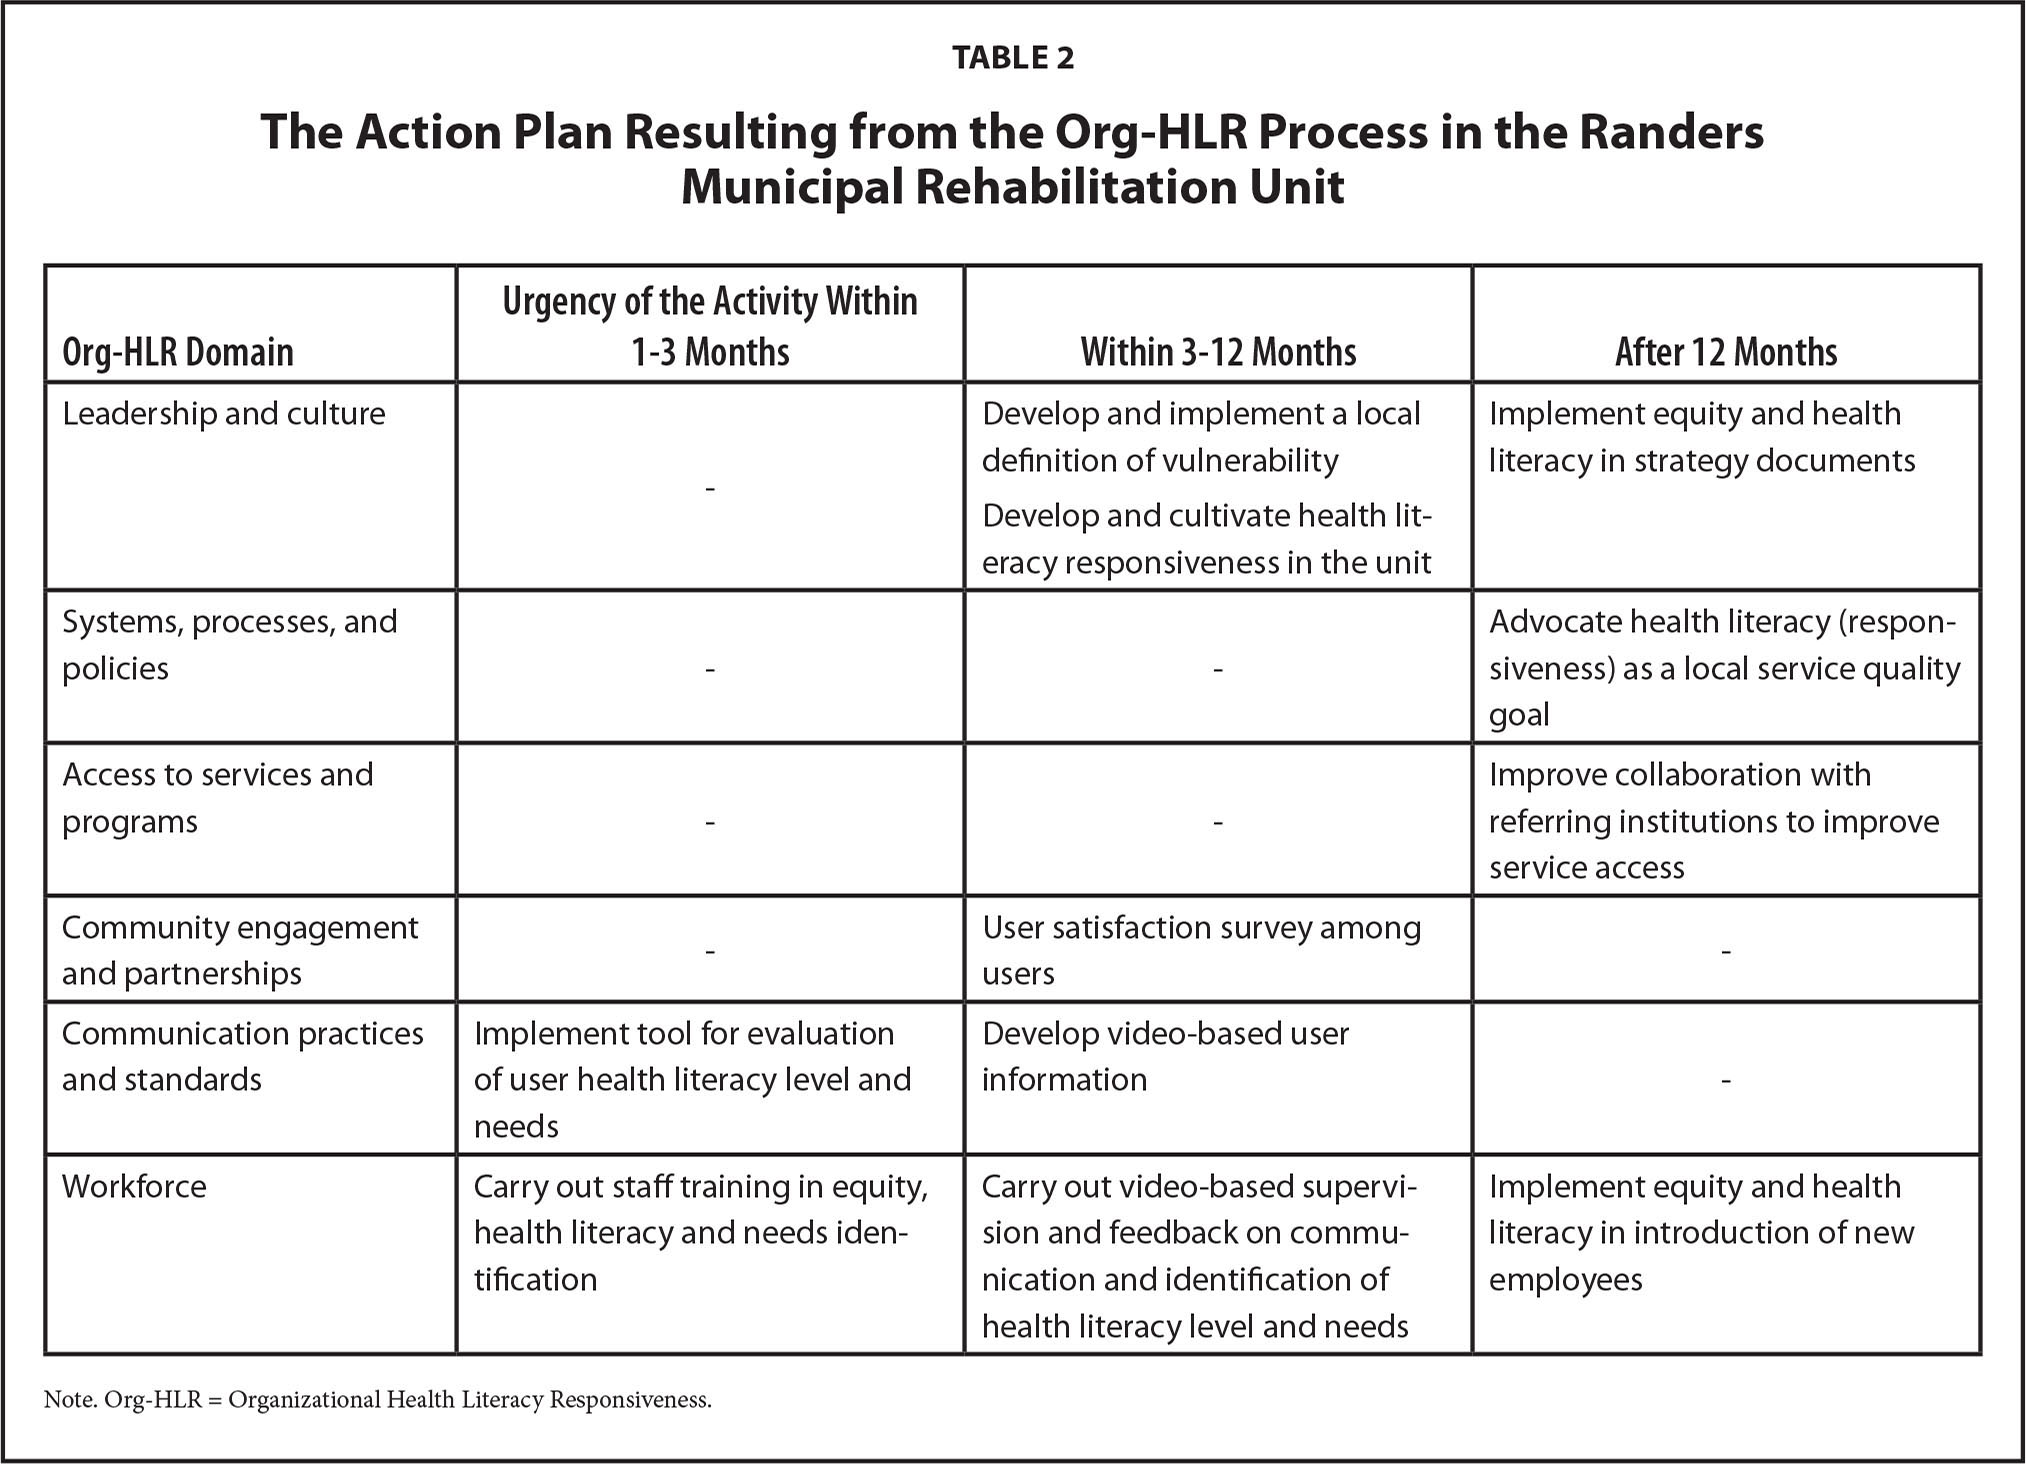 The Action Plan Resulting from the Org-HLR Process in the Randers Municipal Rehabilitation Unit